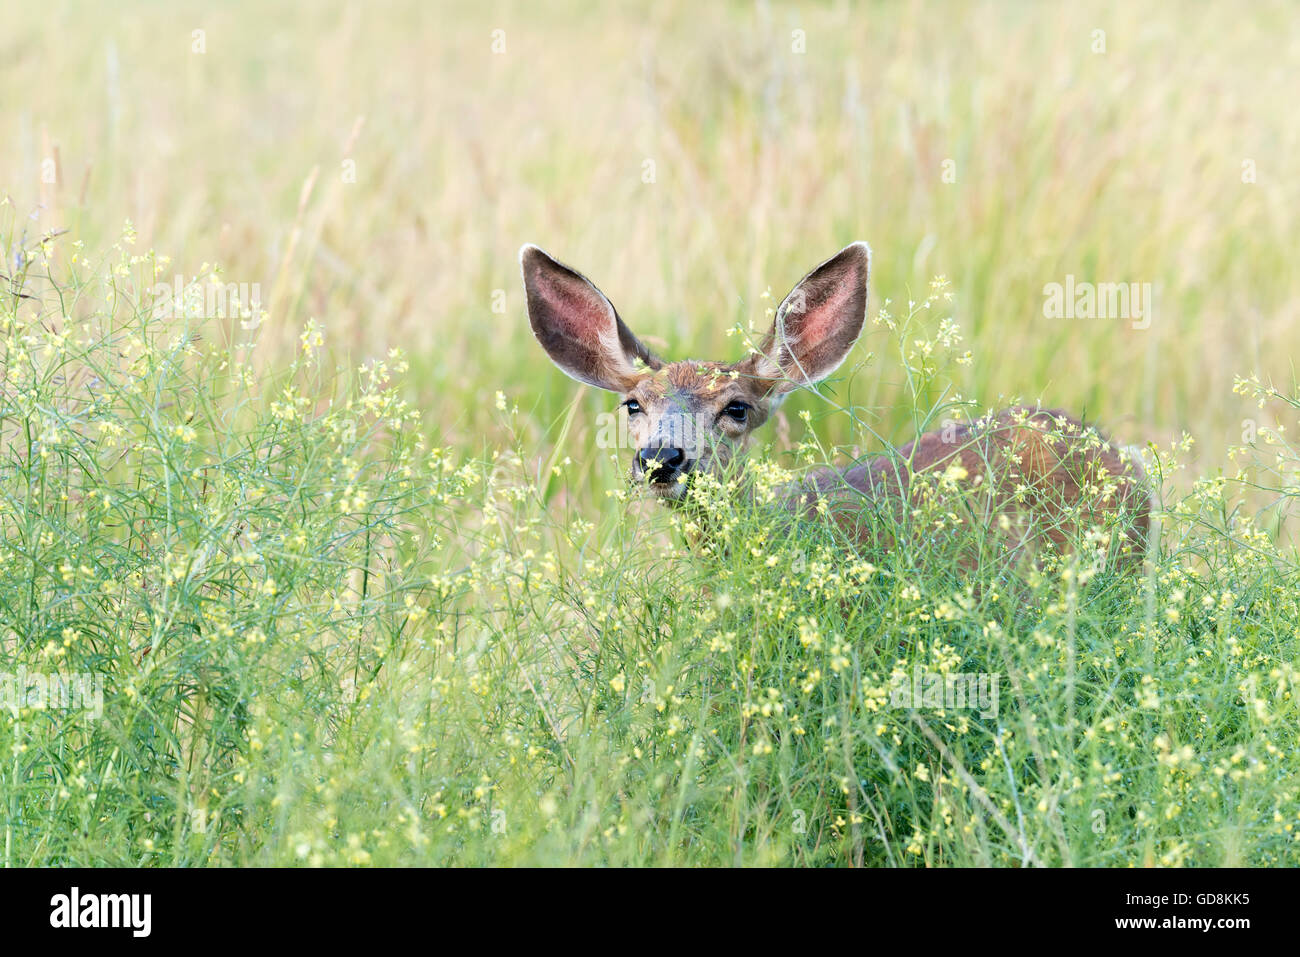 Mule deer in tall grasses and forbs, Iwetemlaykin Heritage Site, Wallowa Valley, Oregon. - Stock Image